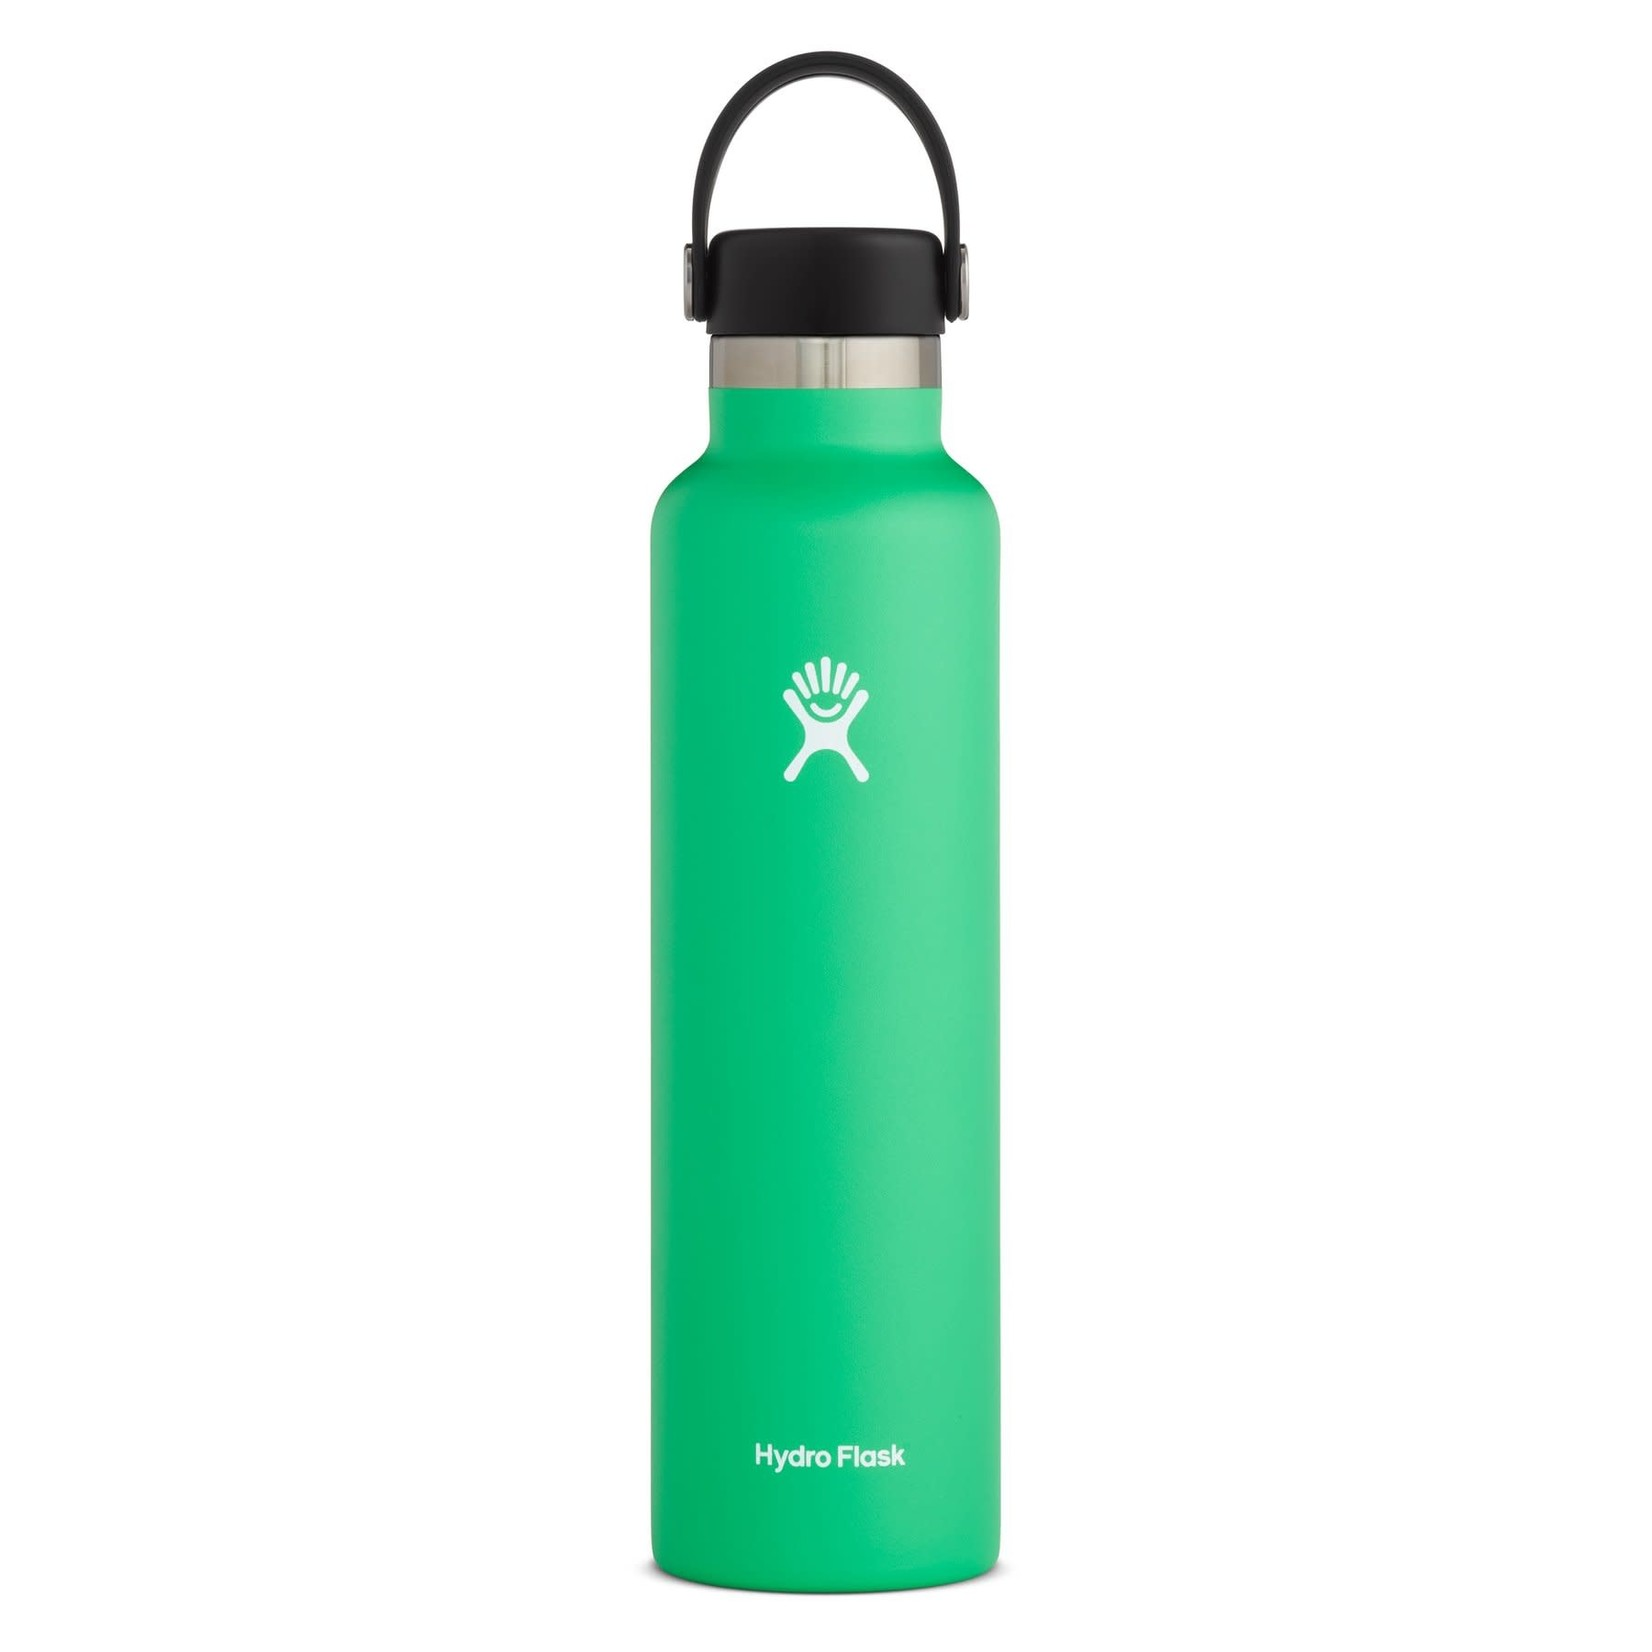 Hydro Flask Hydro Flask Standard Mouth Bottle - Flex Cap Double Insulated 24oz/709ml